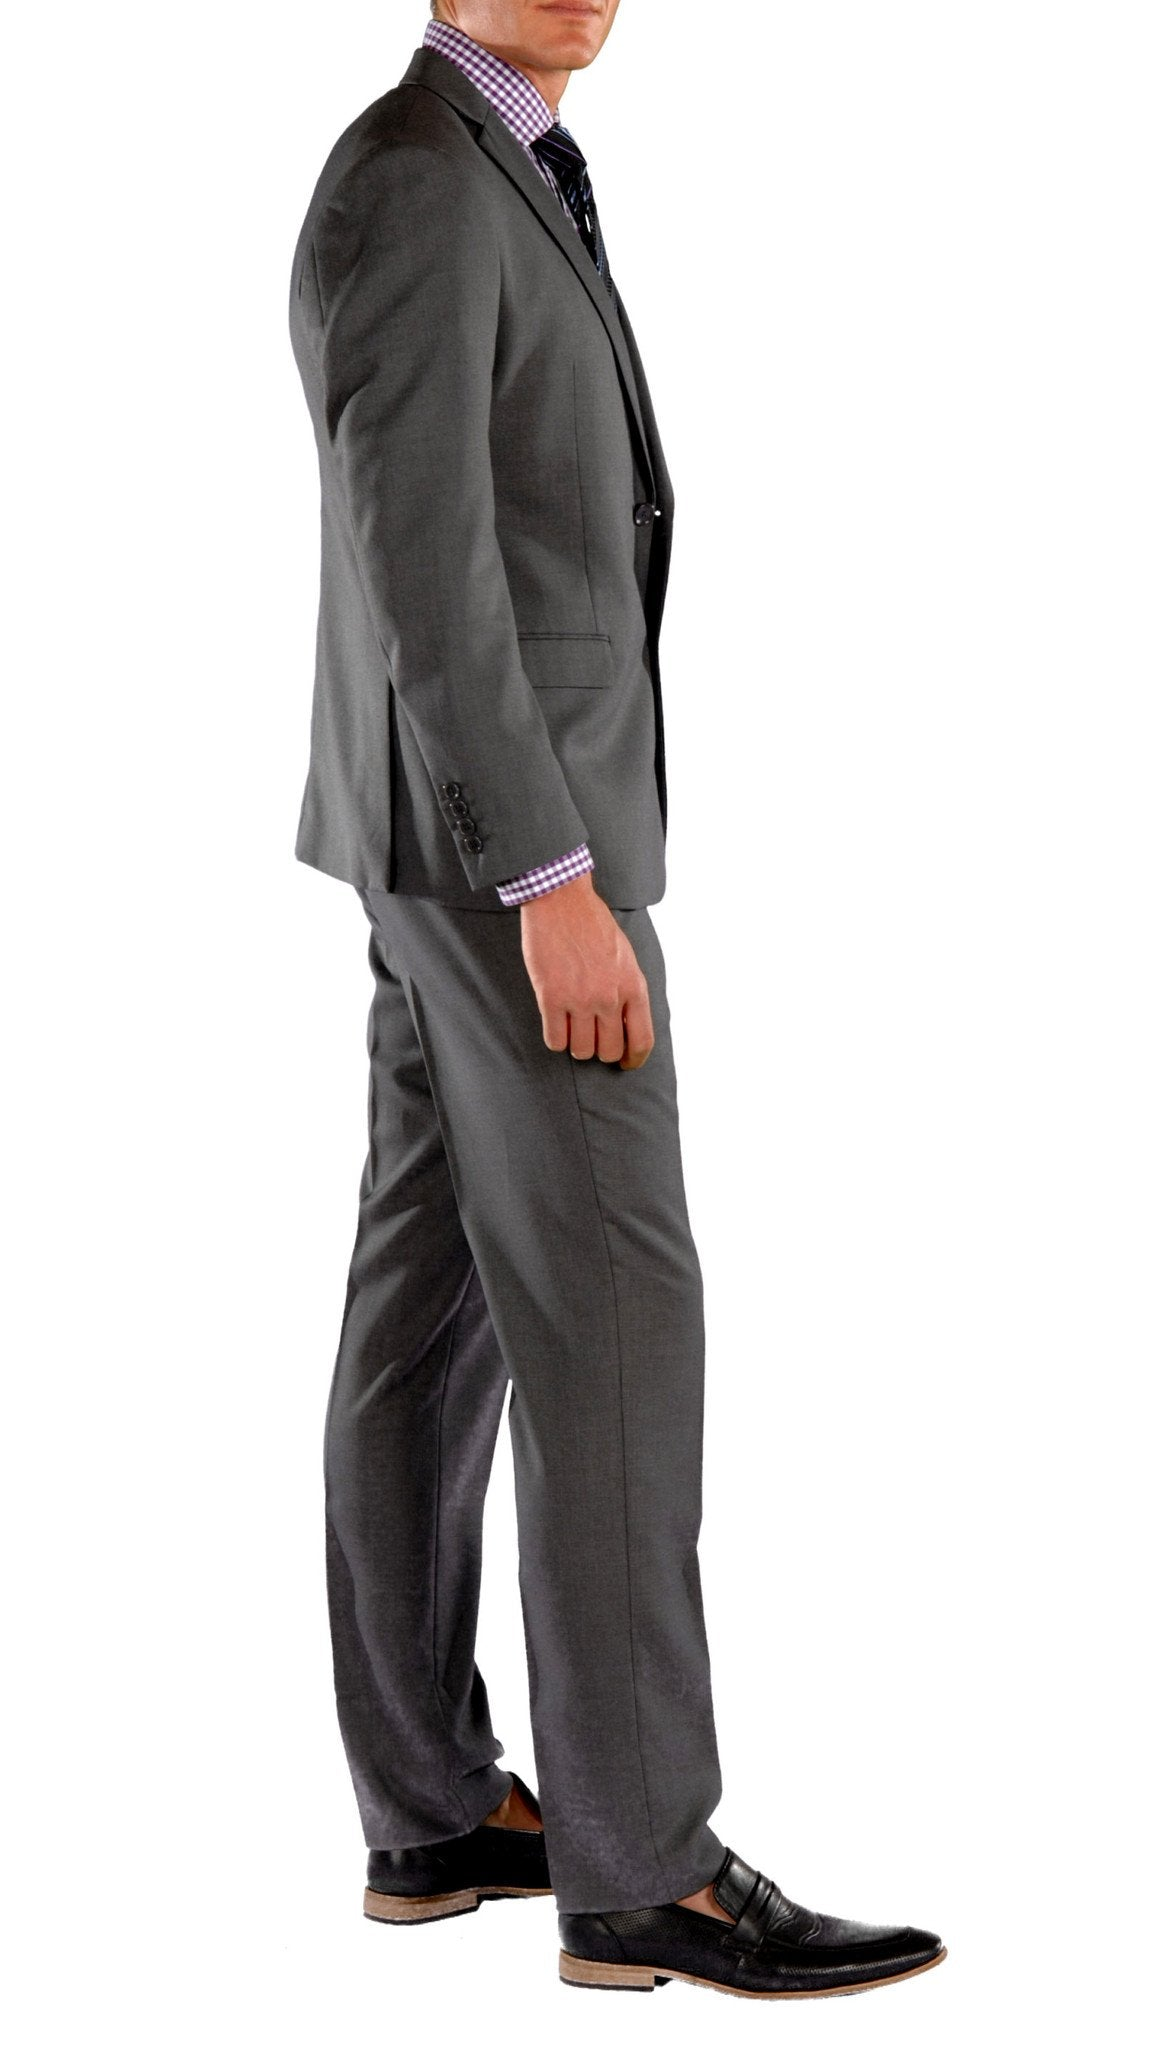 Charcoal Slim Fit Suit - 2PC - HART - Giorgio's Menswear